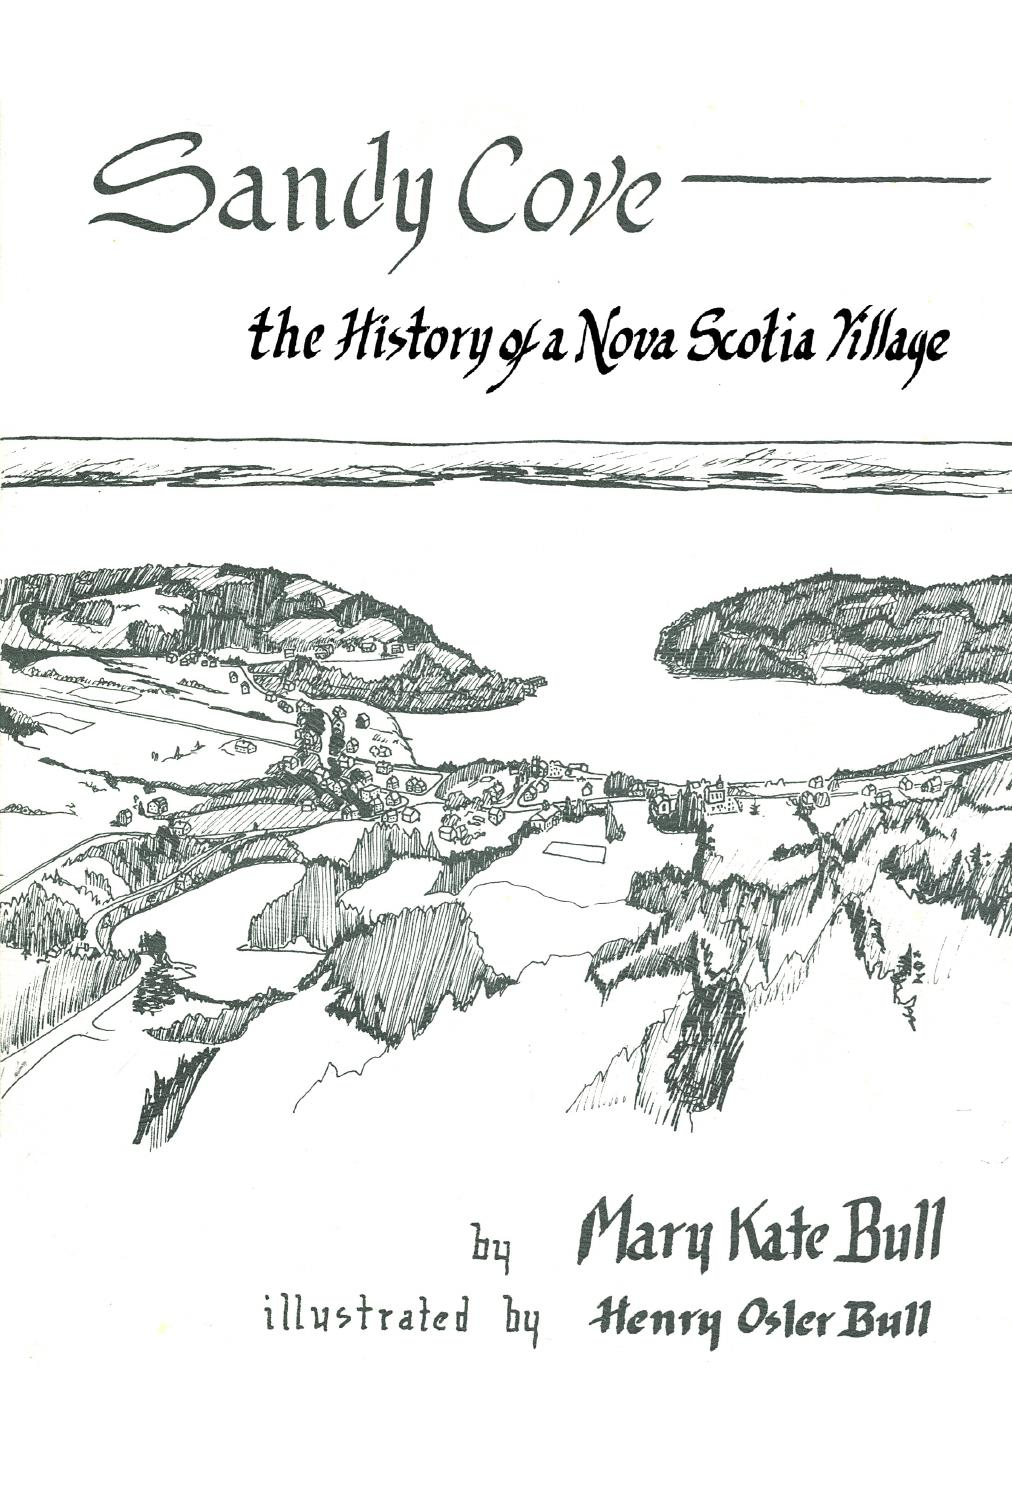 Sandy cove the history of a nova scotia village by sandycove issuu aiddatafo Gallery